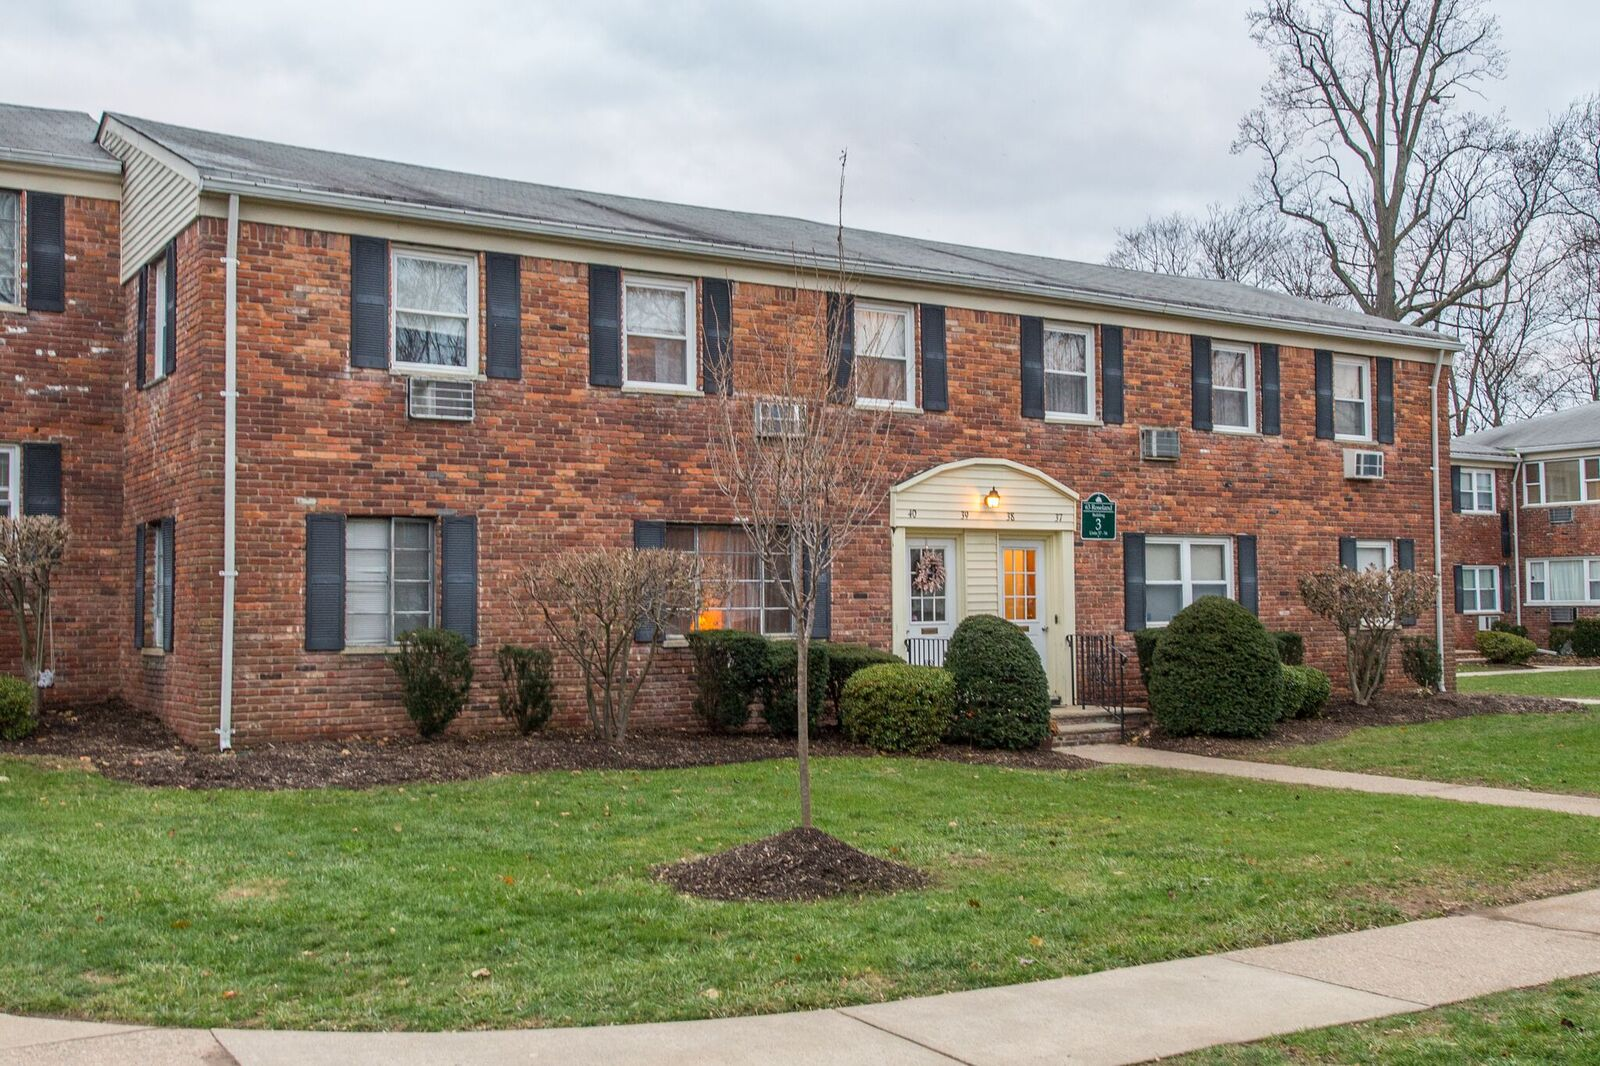 4.51/5 (15) Parkside Gardens Condos Caldwell New Jersey